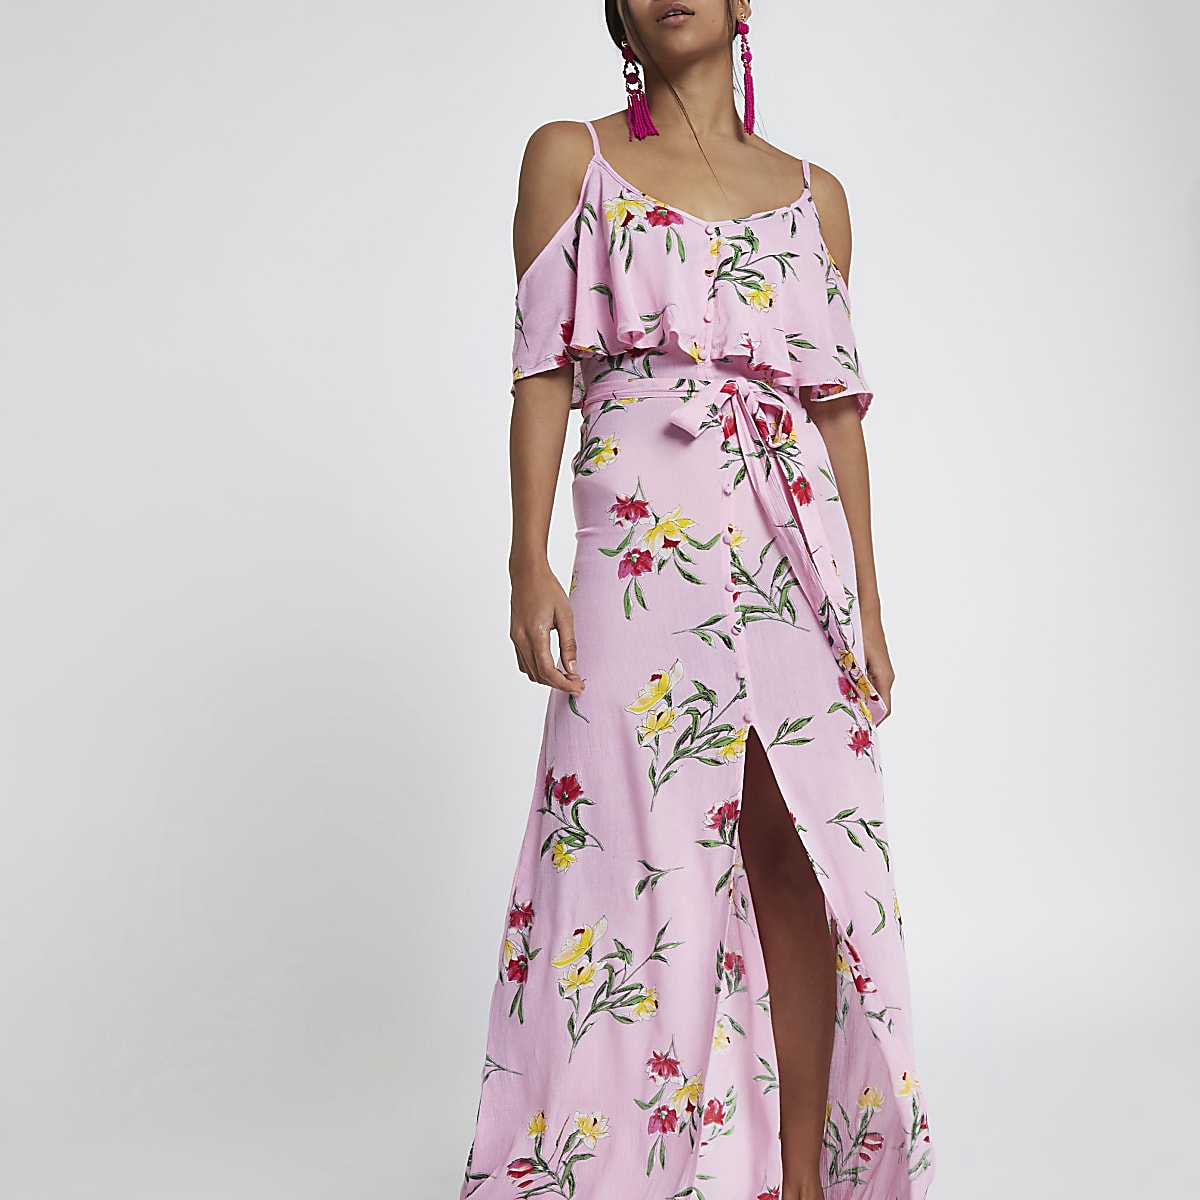 ded0fee8dce Petite pink floral button front maxi dress - Maxi Dresses - Dresses - women